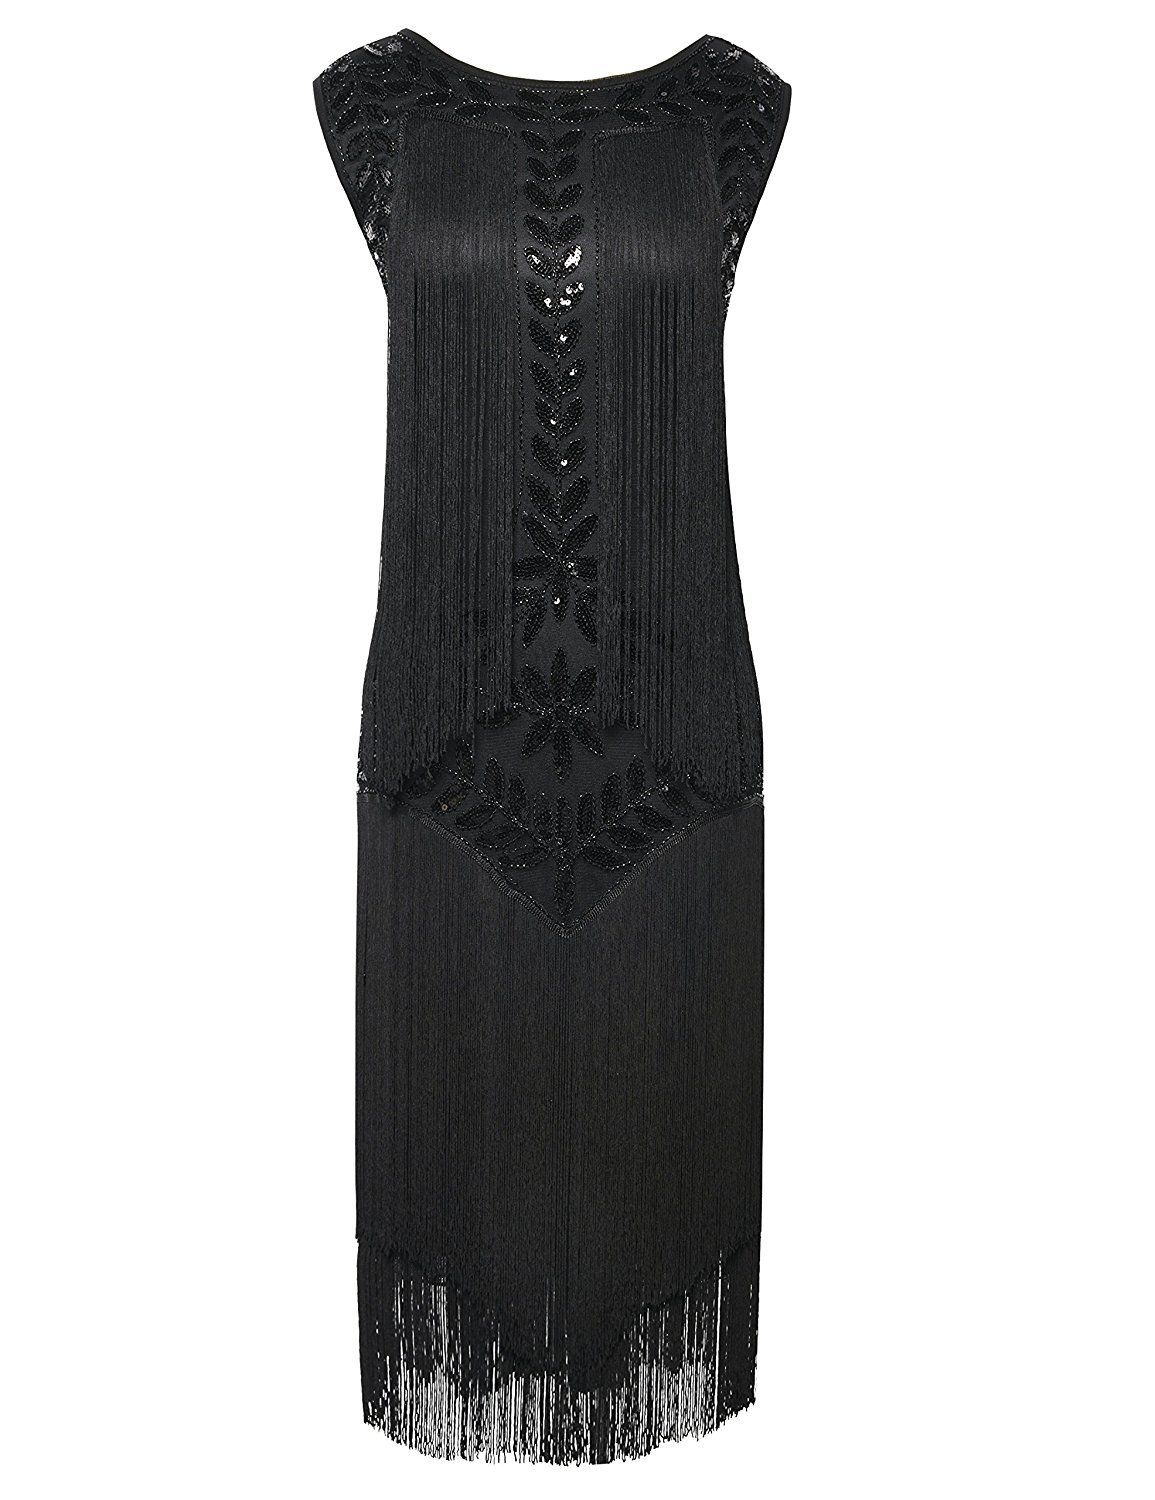 Womenus s vintage cocktail dress formal products